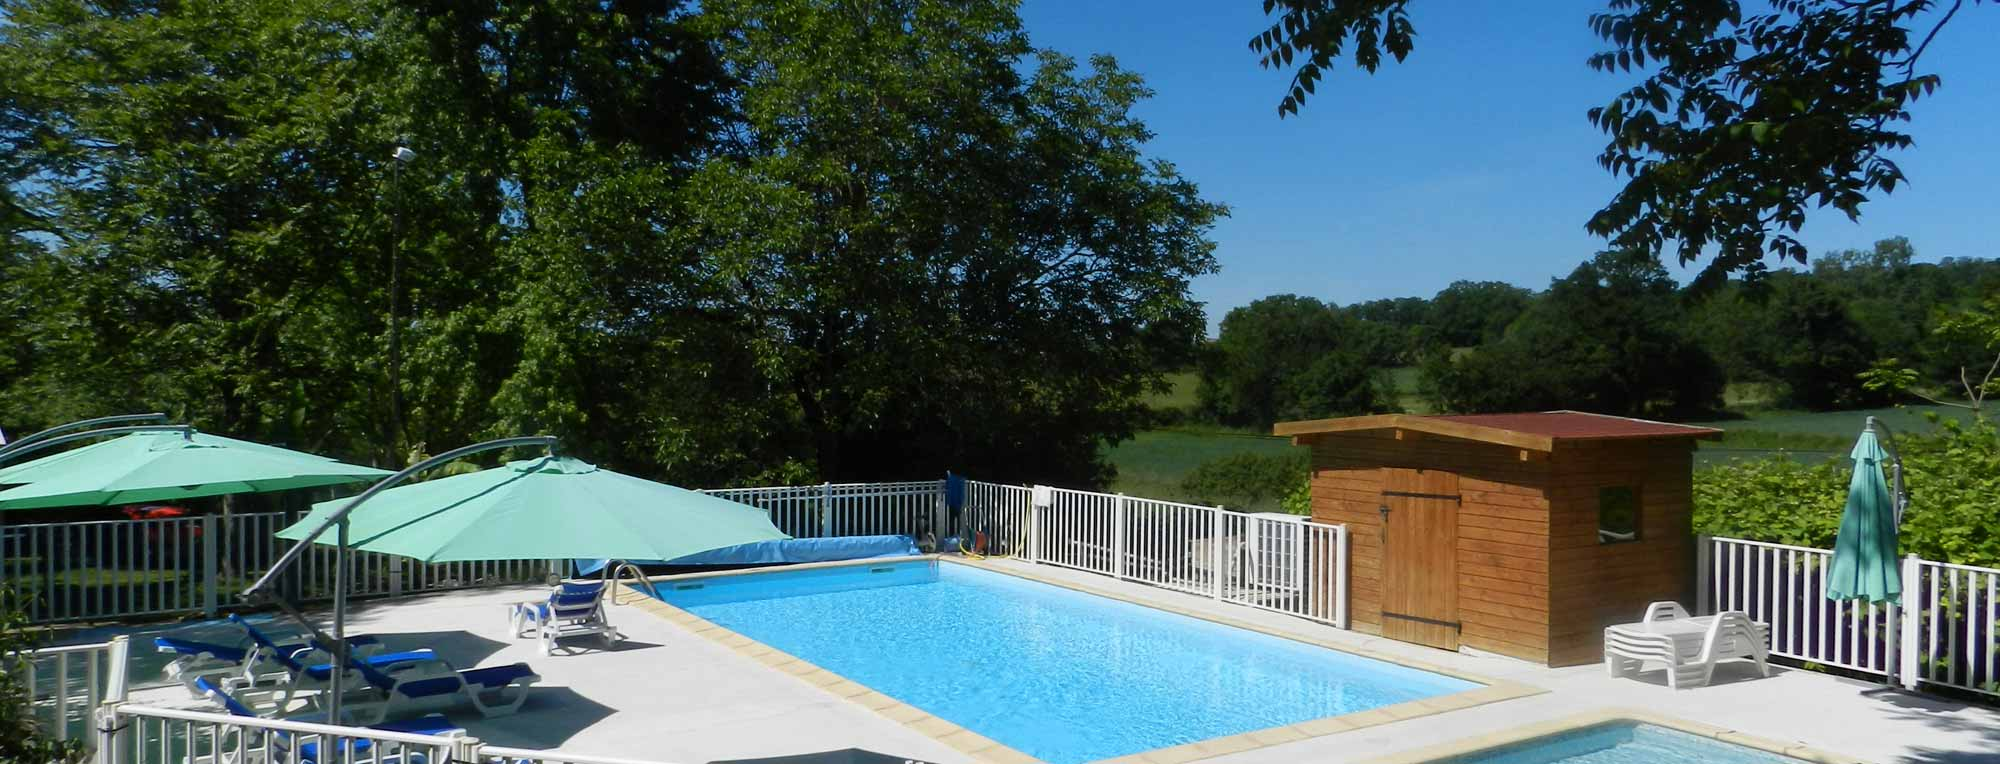 piscine camping rocamadour camping les tilleuls